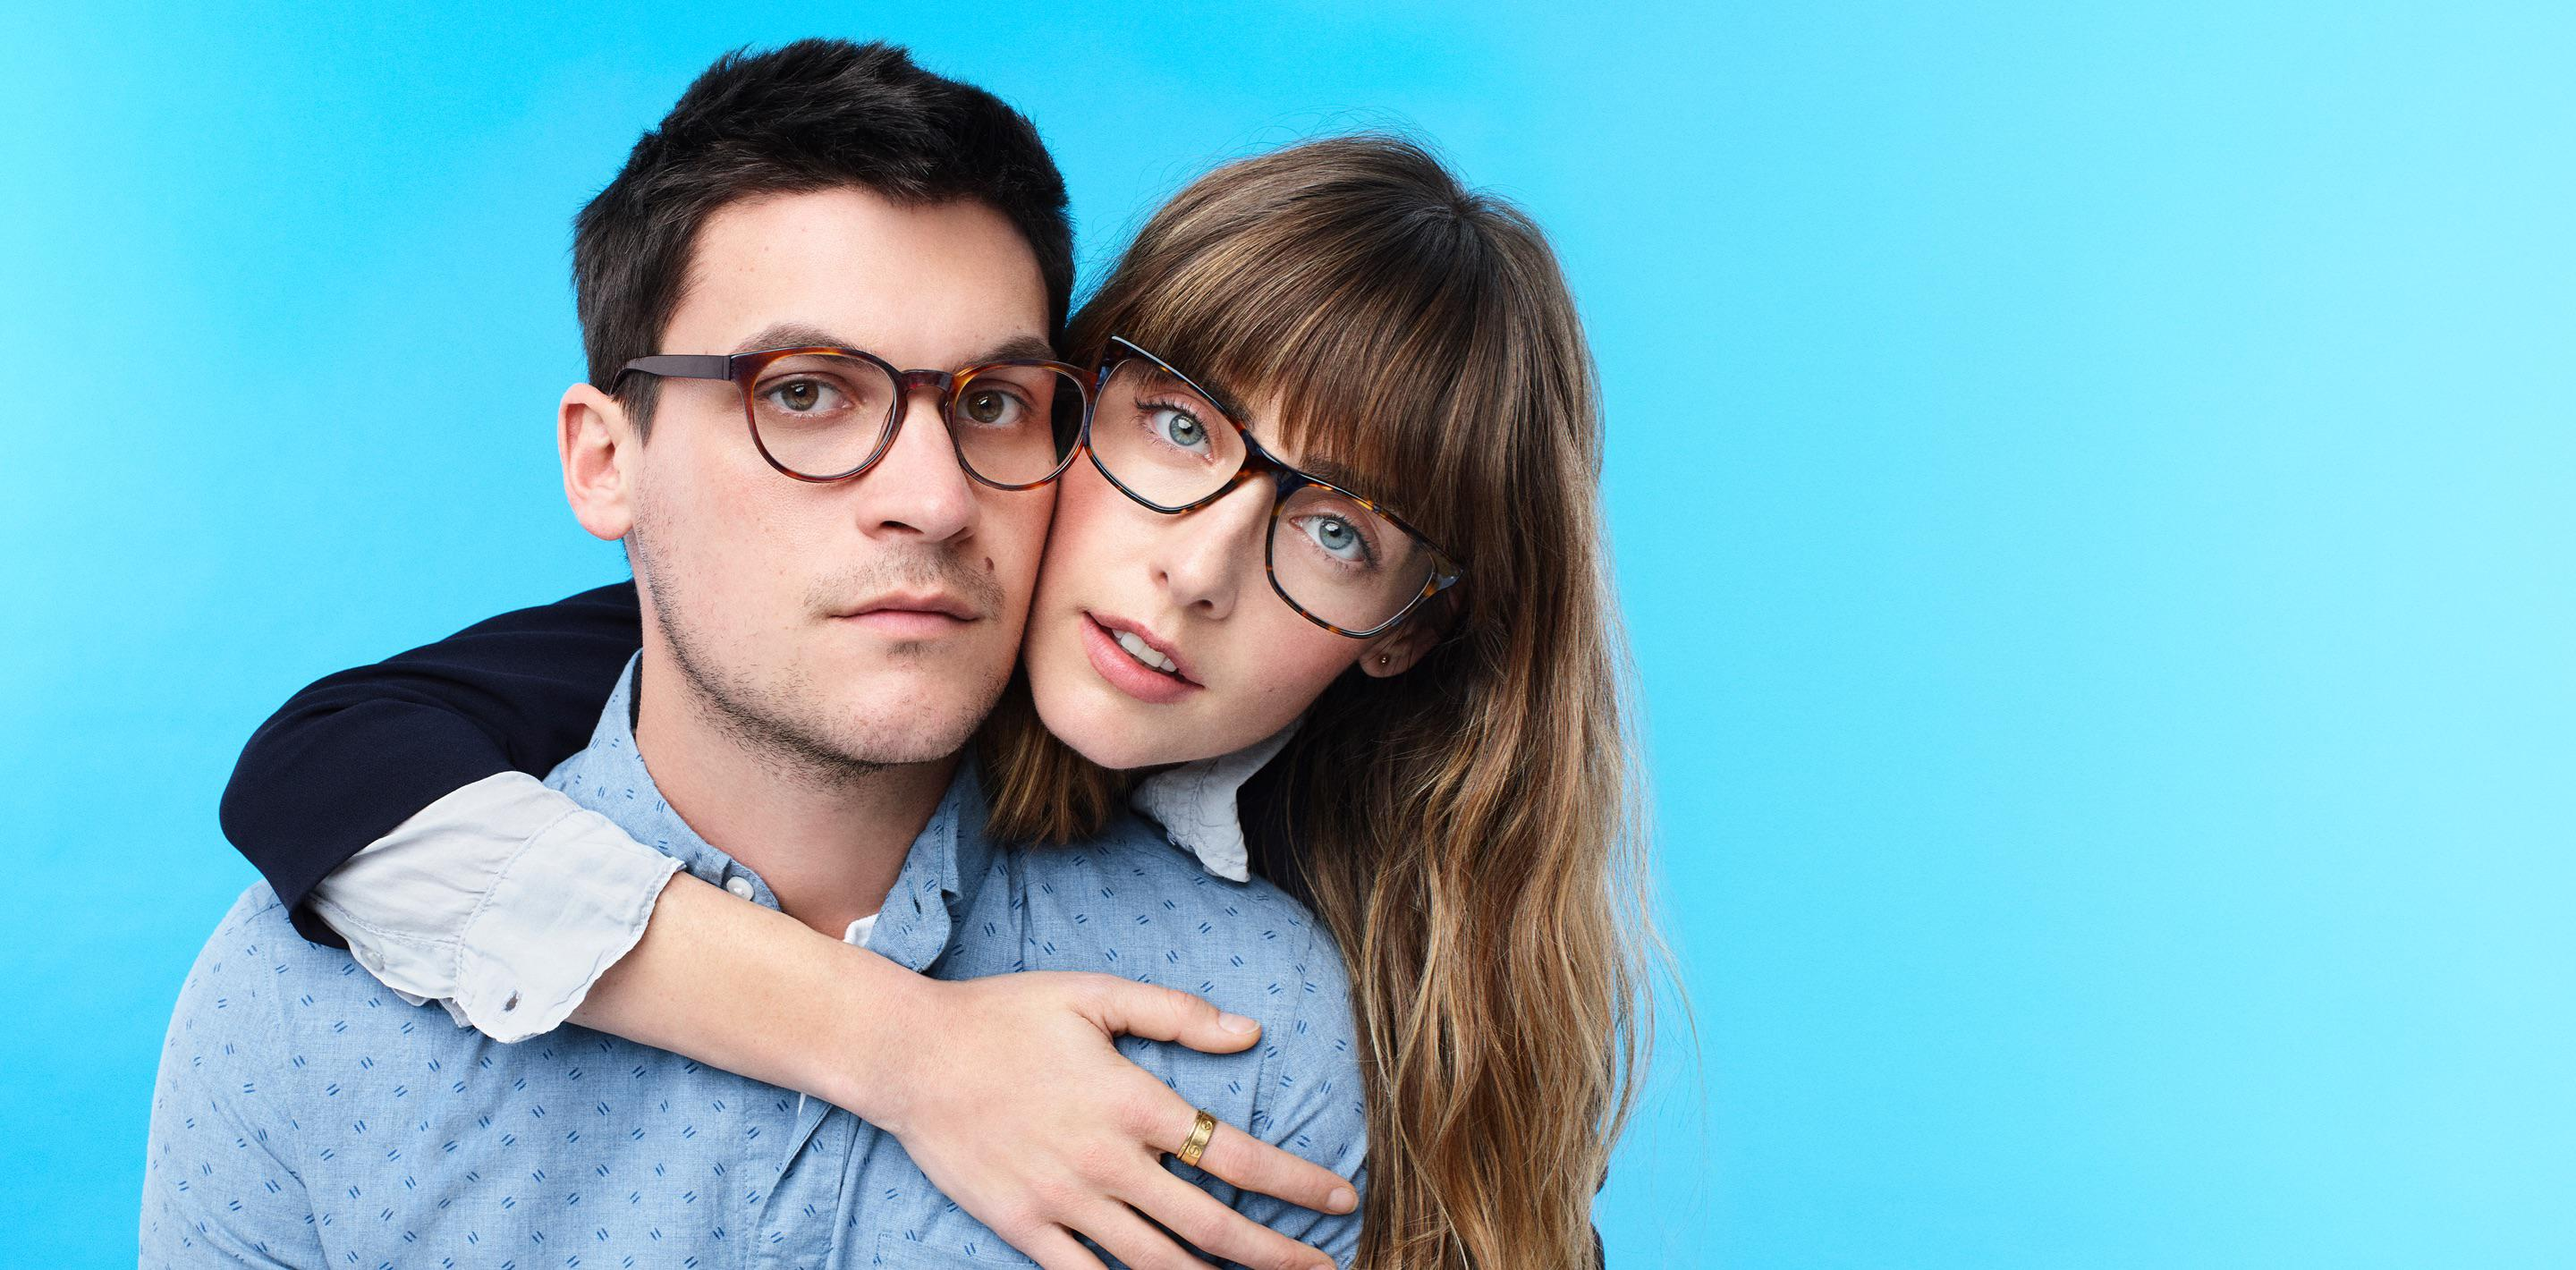 two people wearing glasses